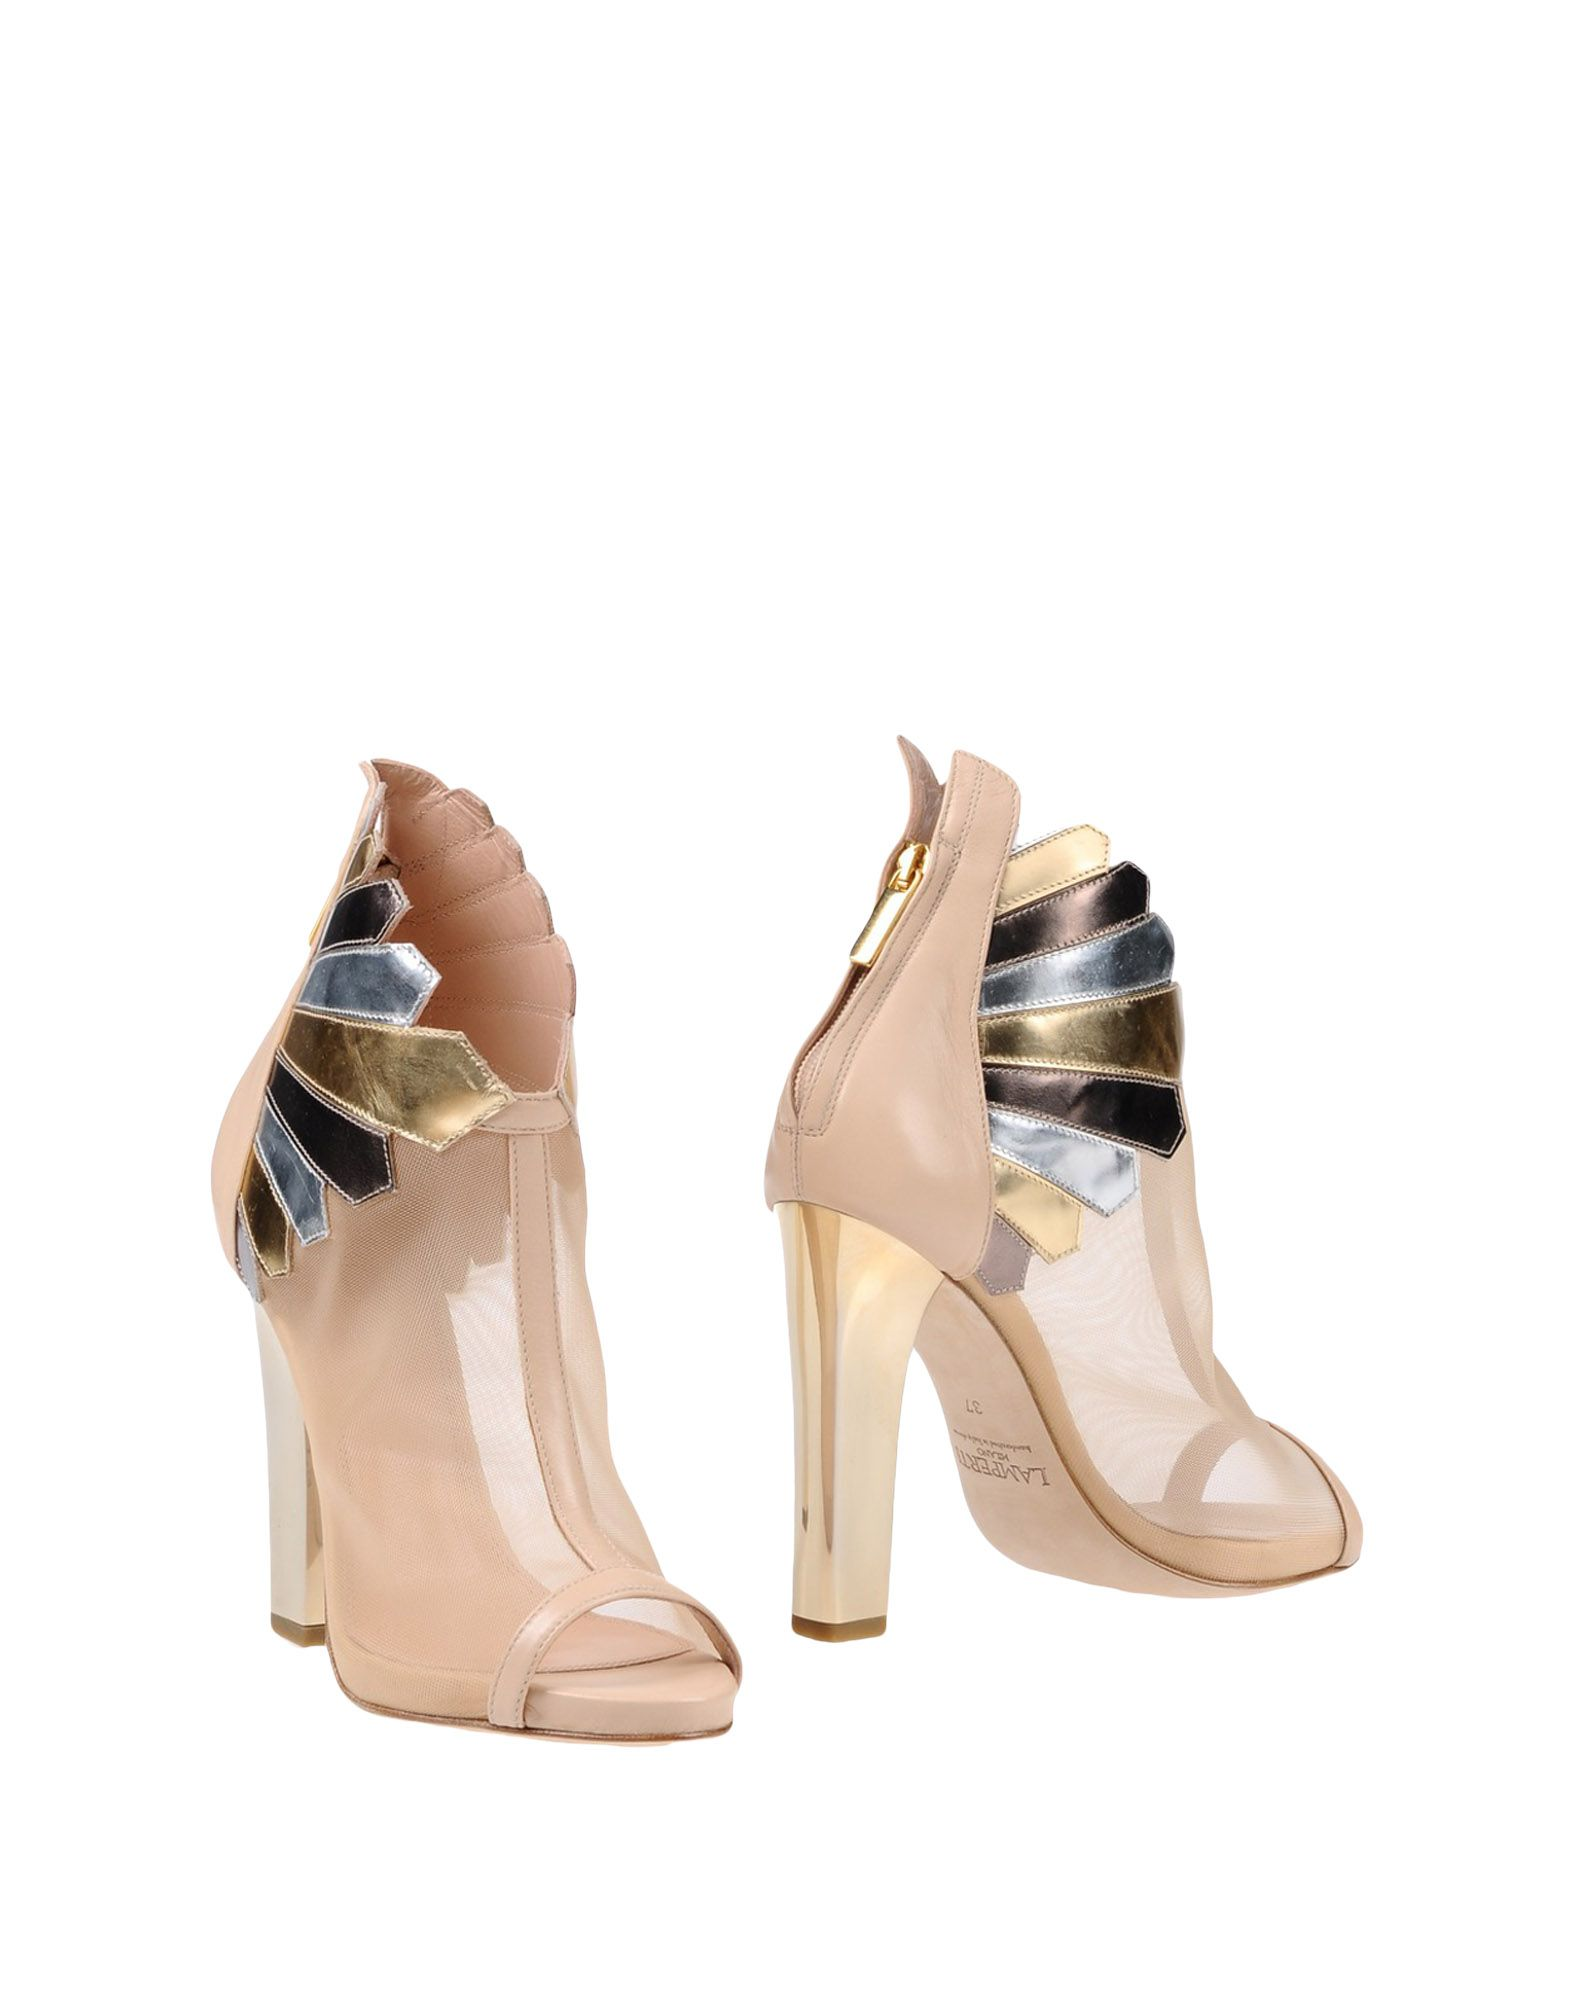 LAMPERTI MILANO Ankle Boots in Beige